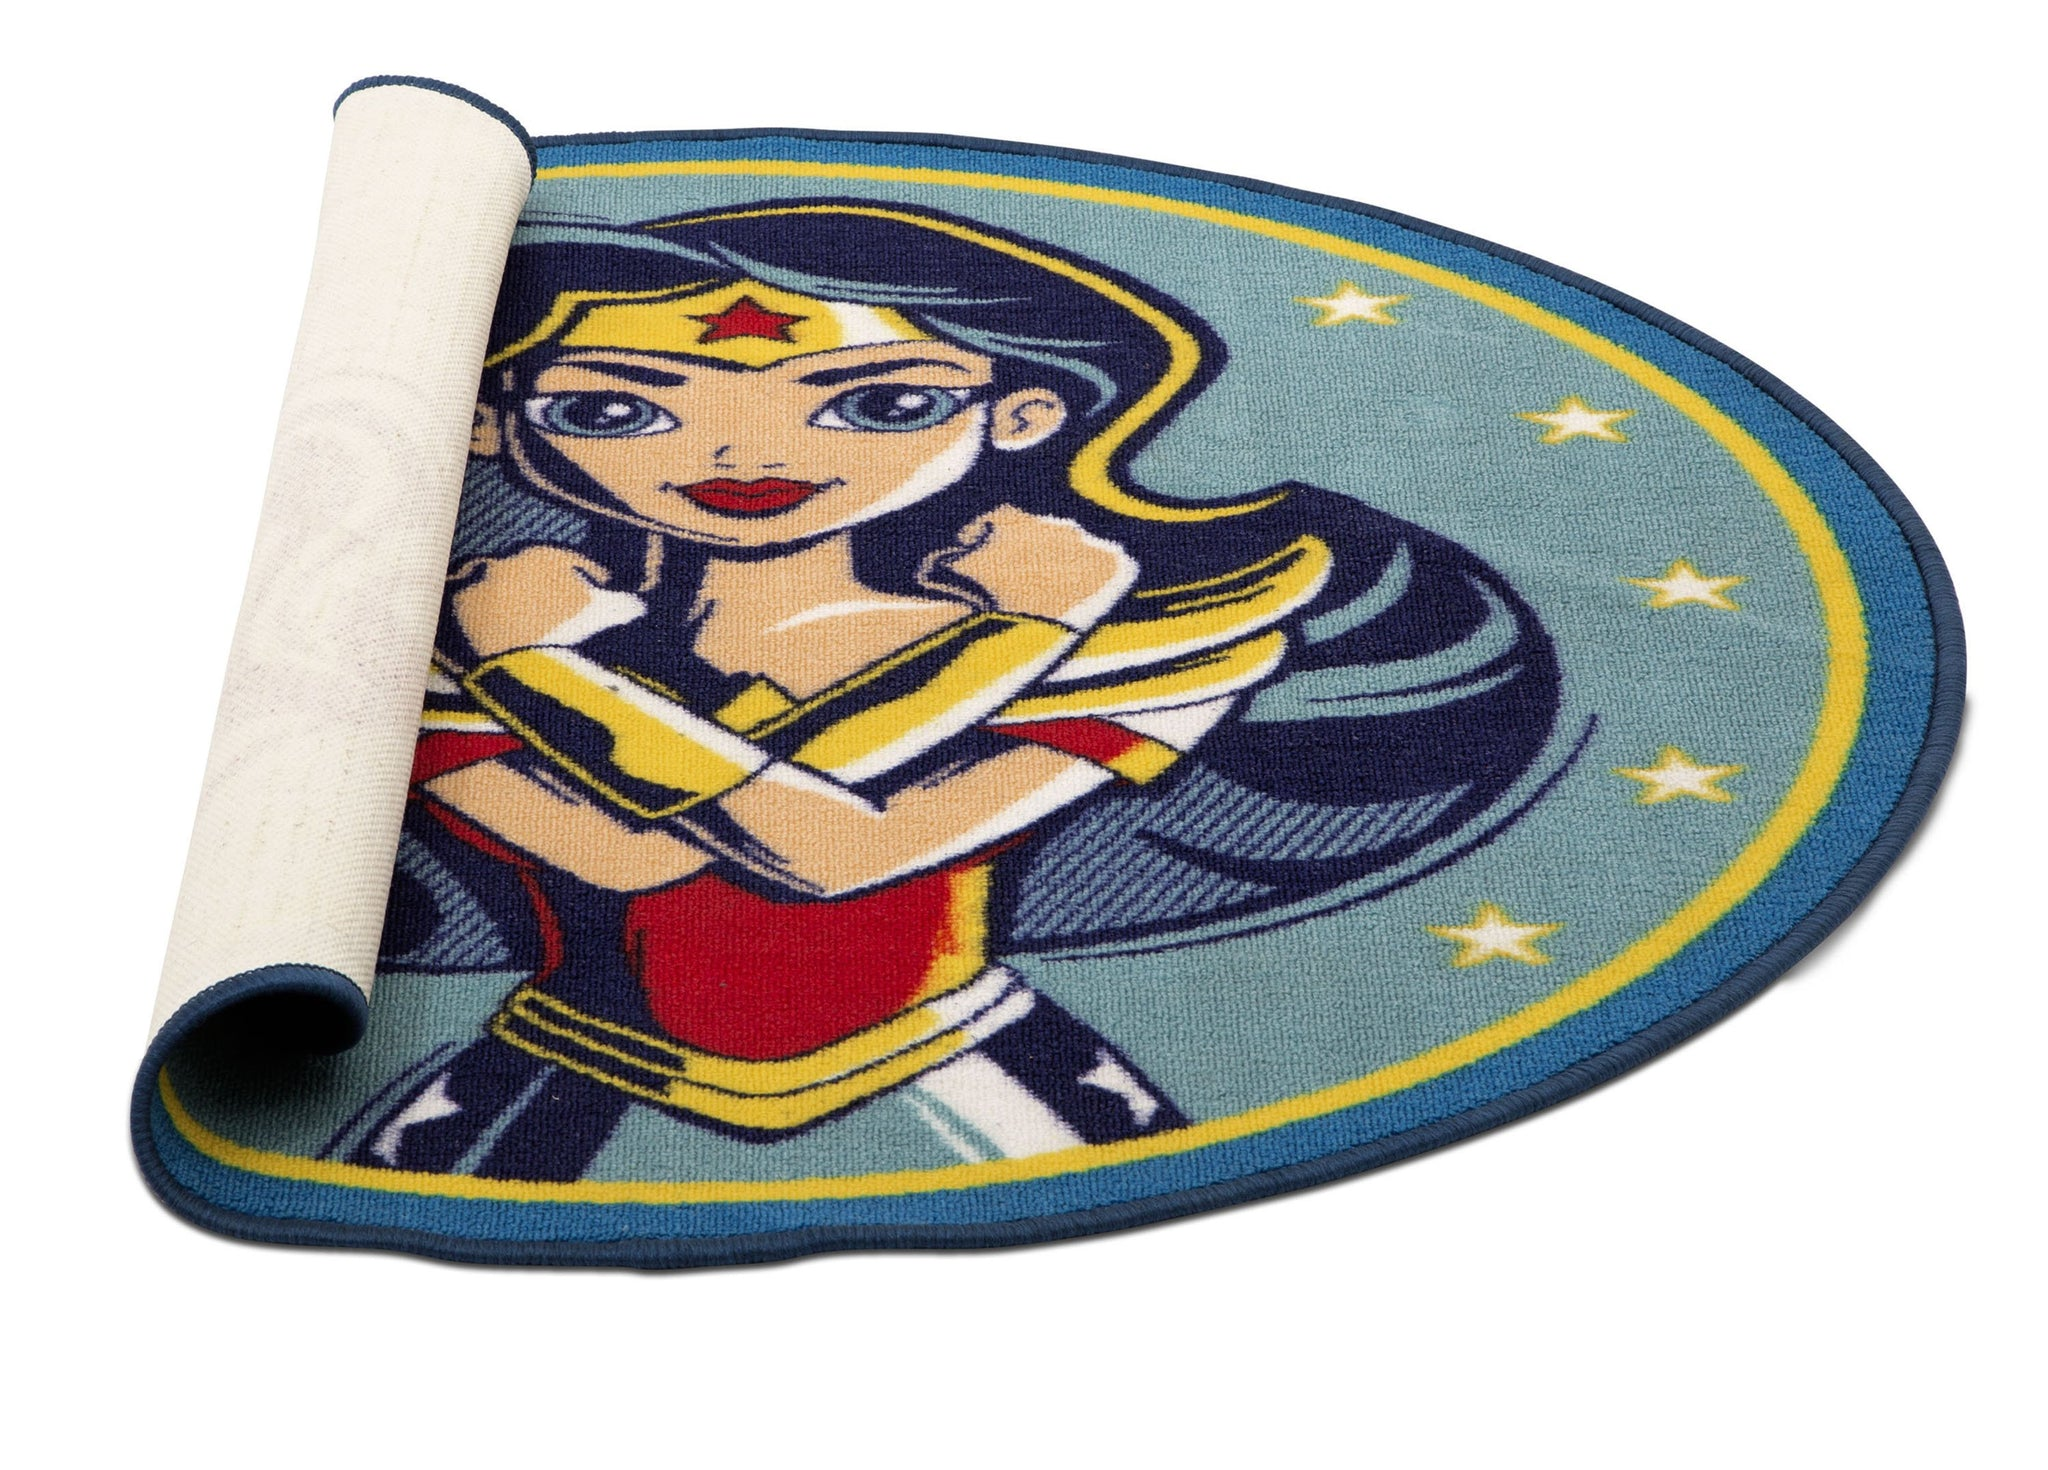 Delta Children Super Hero Girls (1205) Soft Area Rug with Non-Slip Backing (TR80122SG), Rolled, a3a